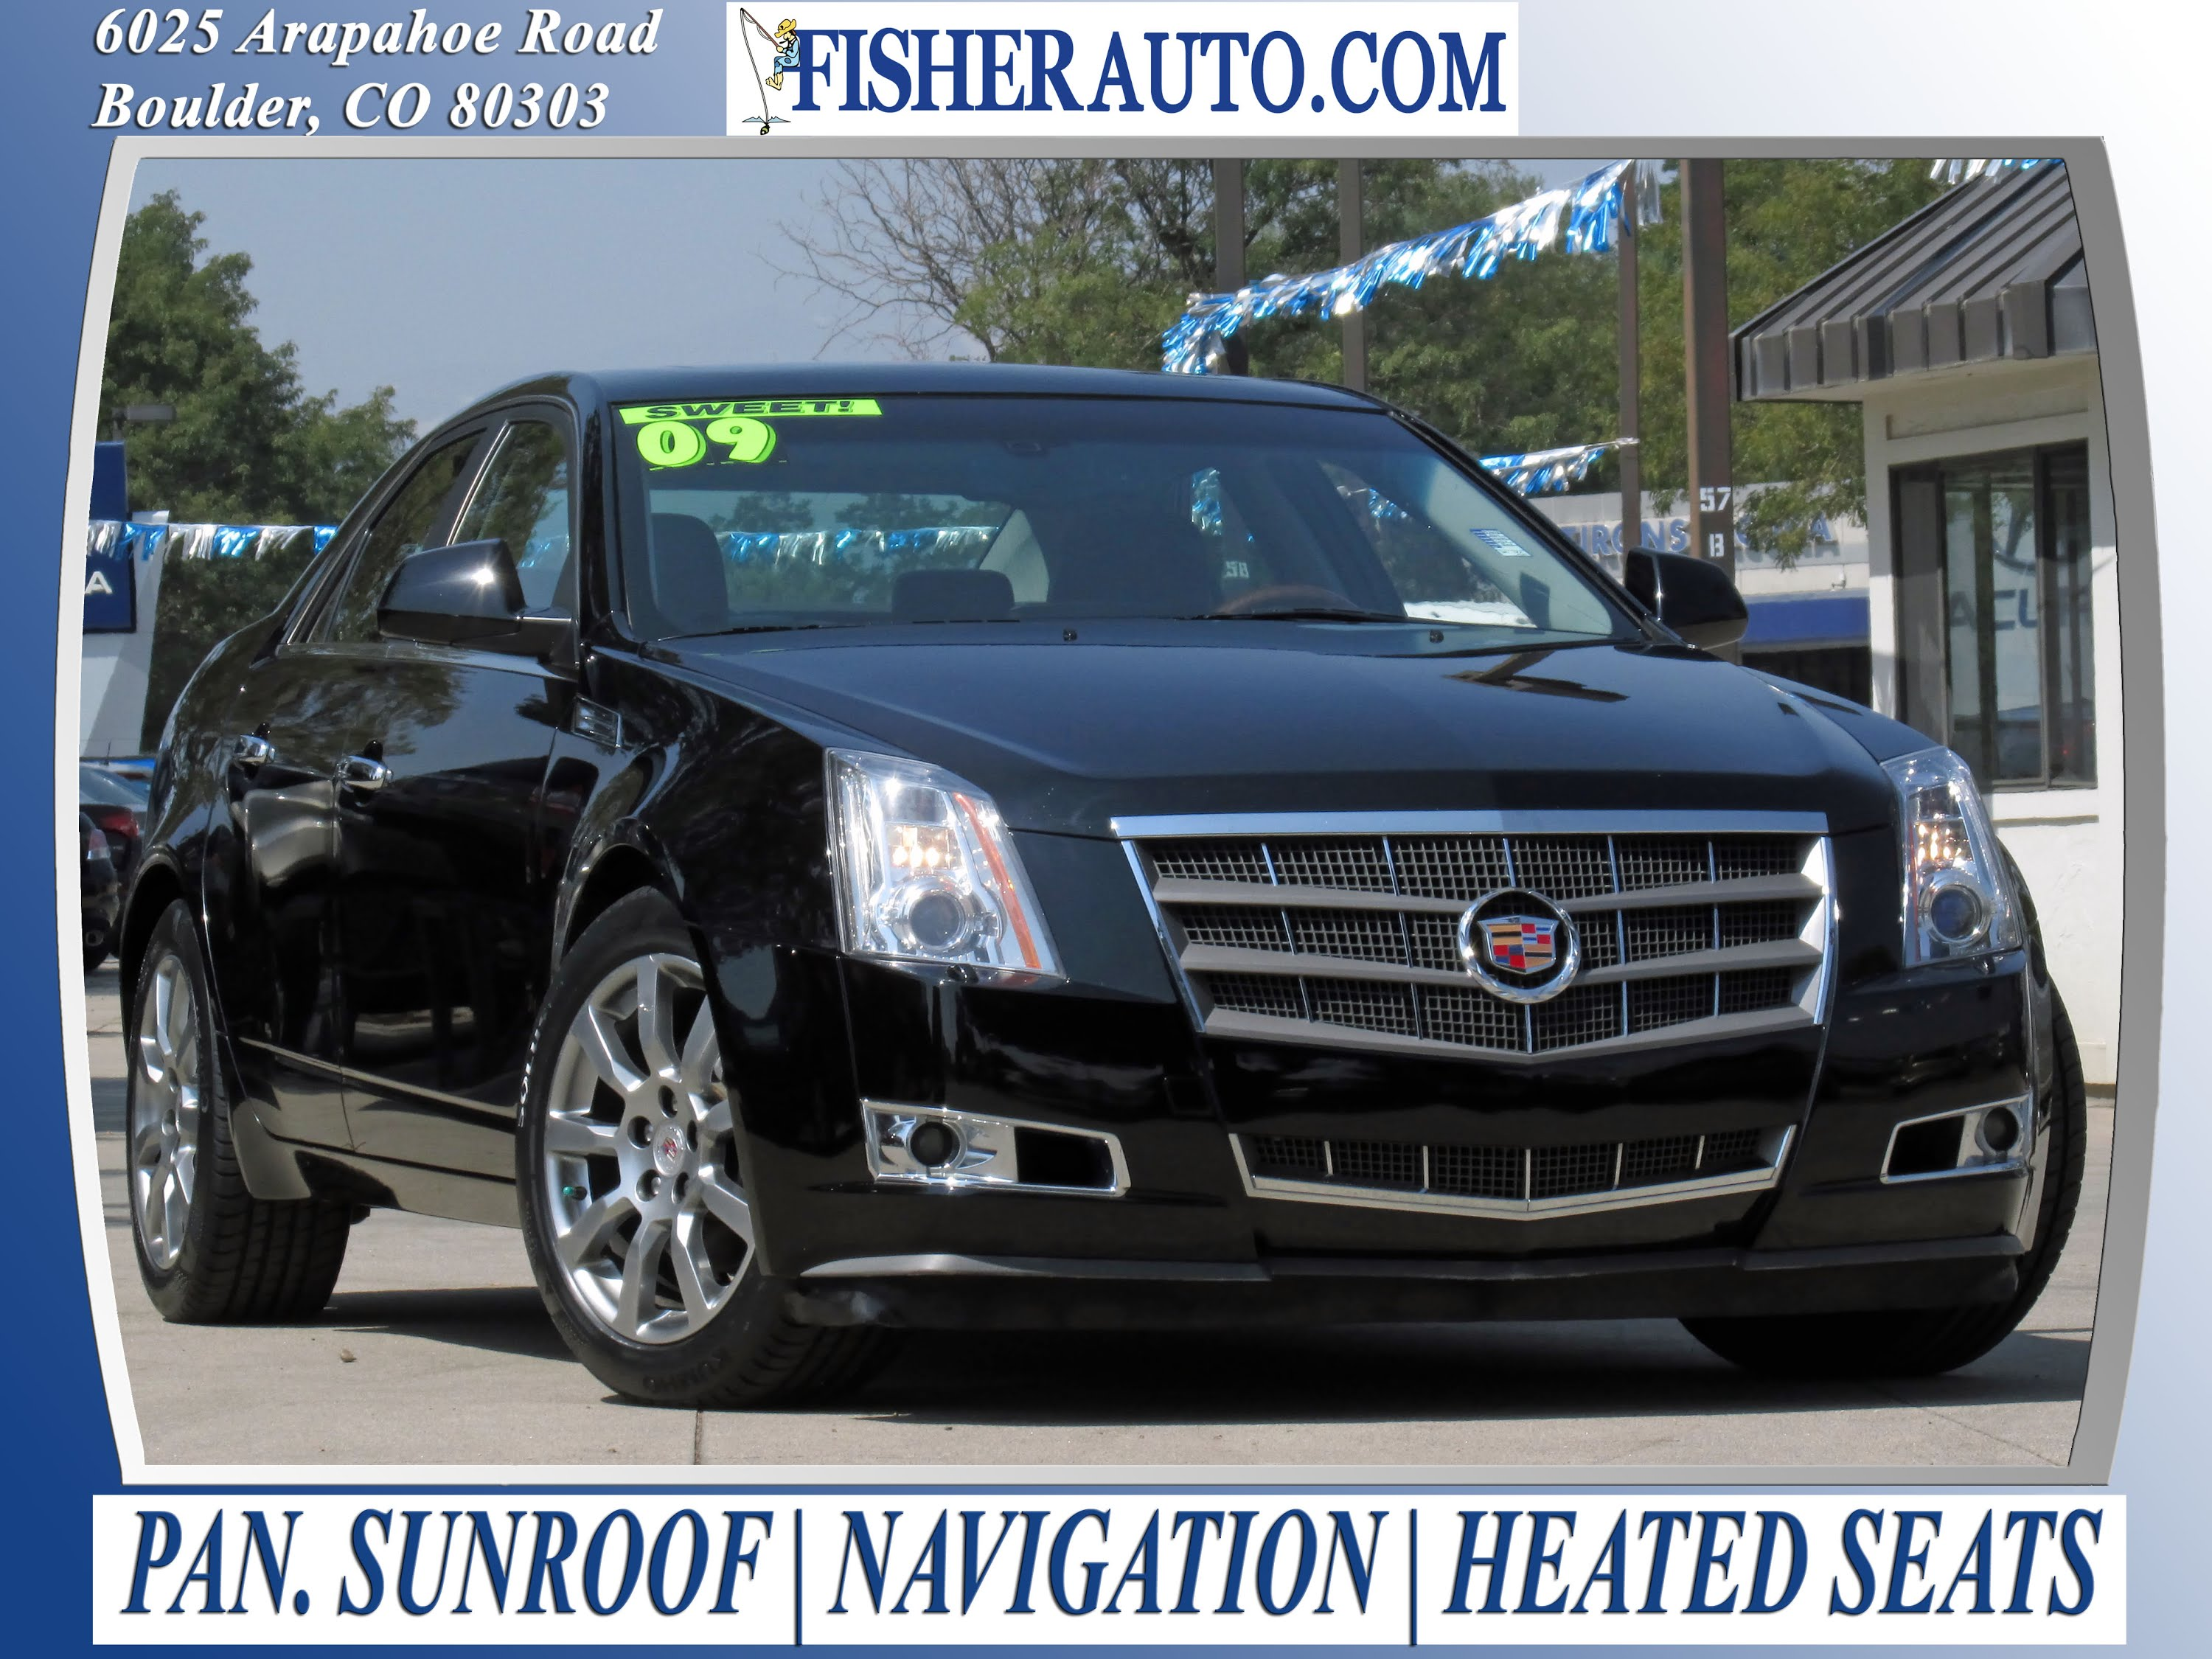 used cars 2009 cadillac cts awd w 1sb boulder longmont denver fisher auto